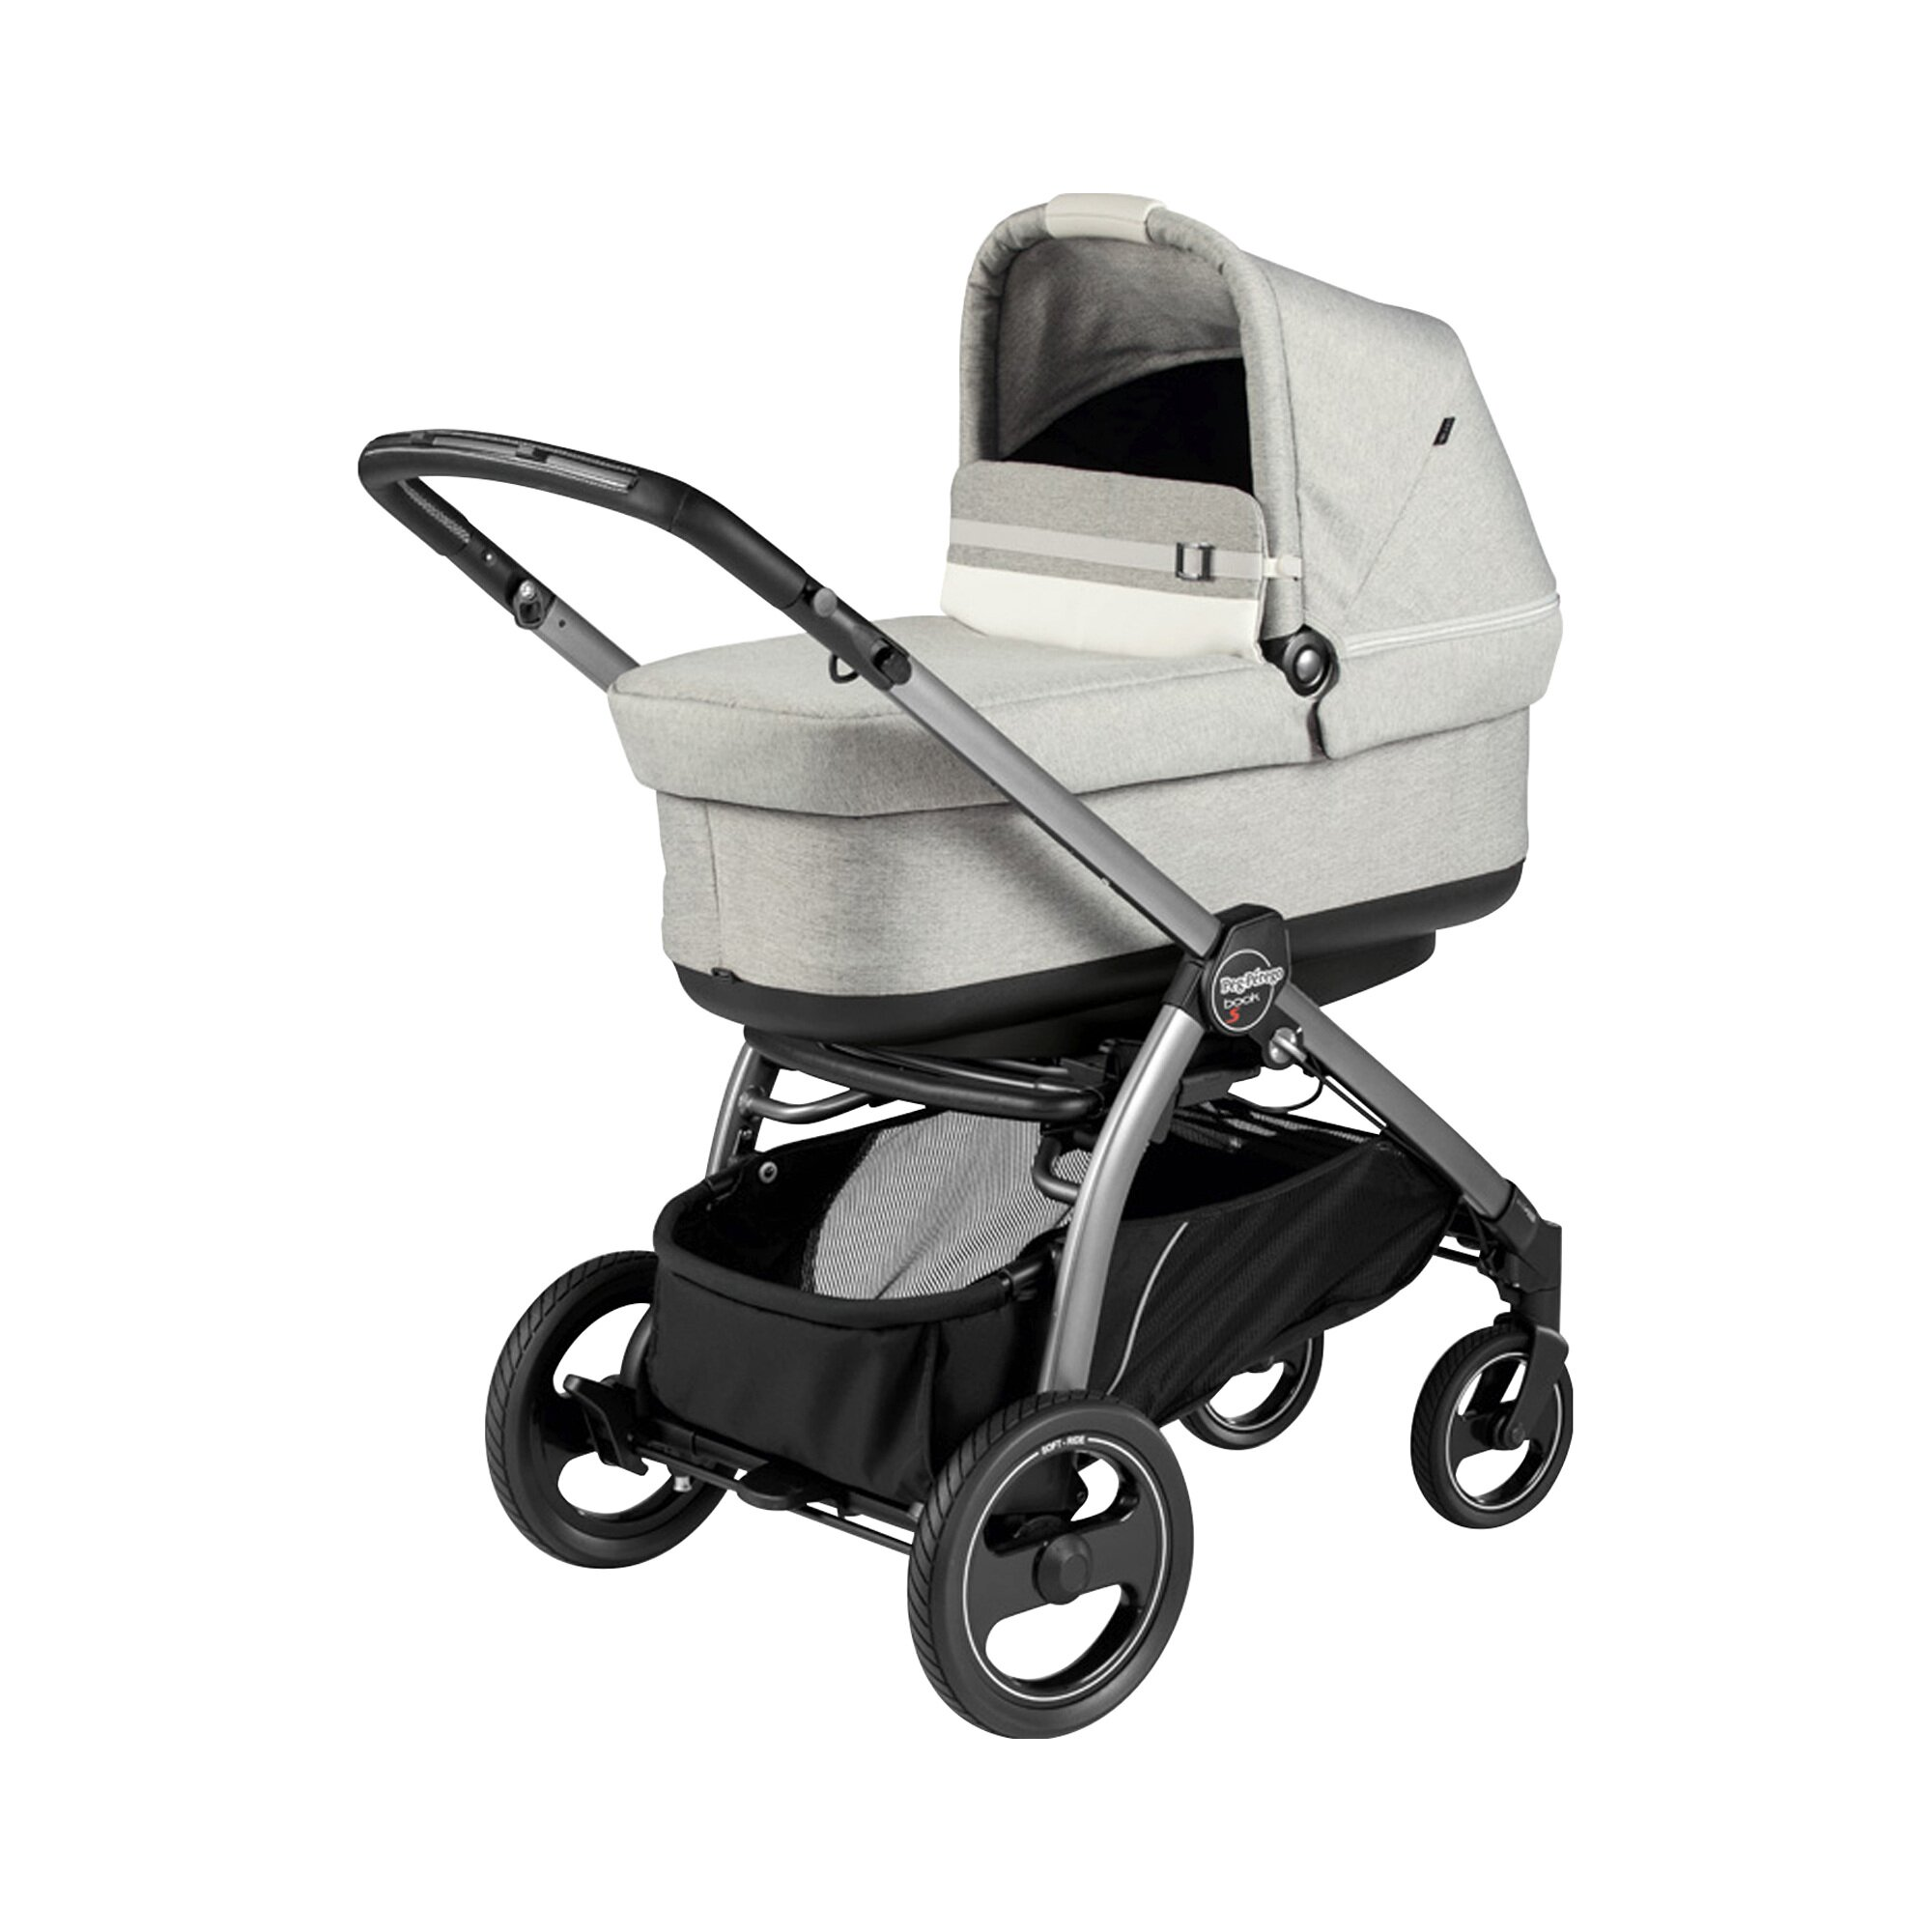 peg-perego-book-s-pop-up-kombikinderwagen-beige